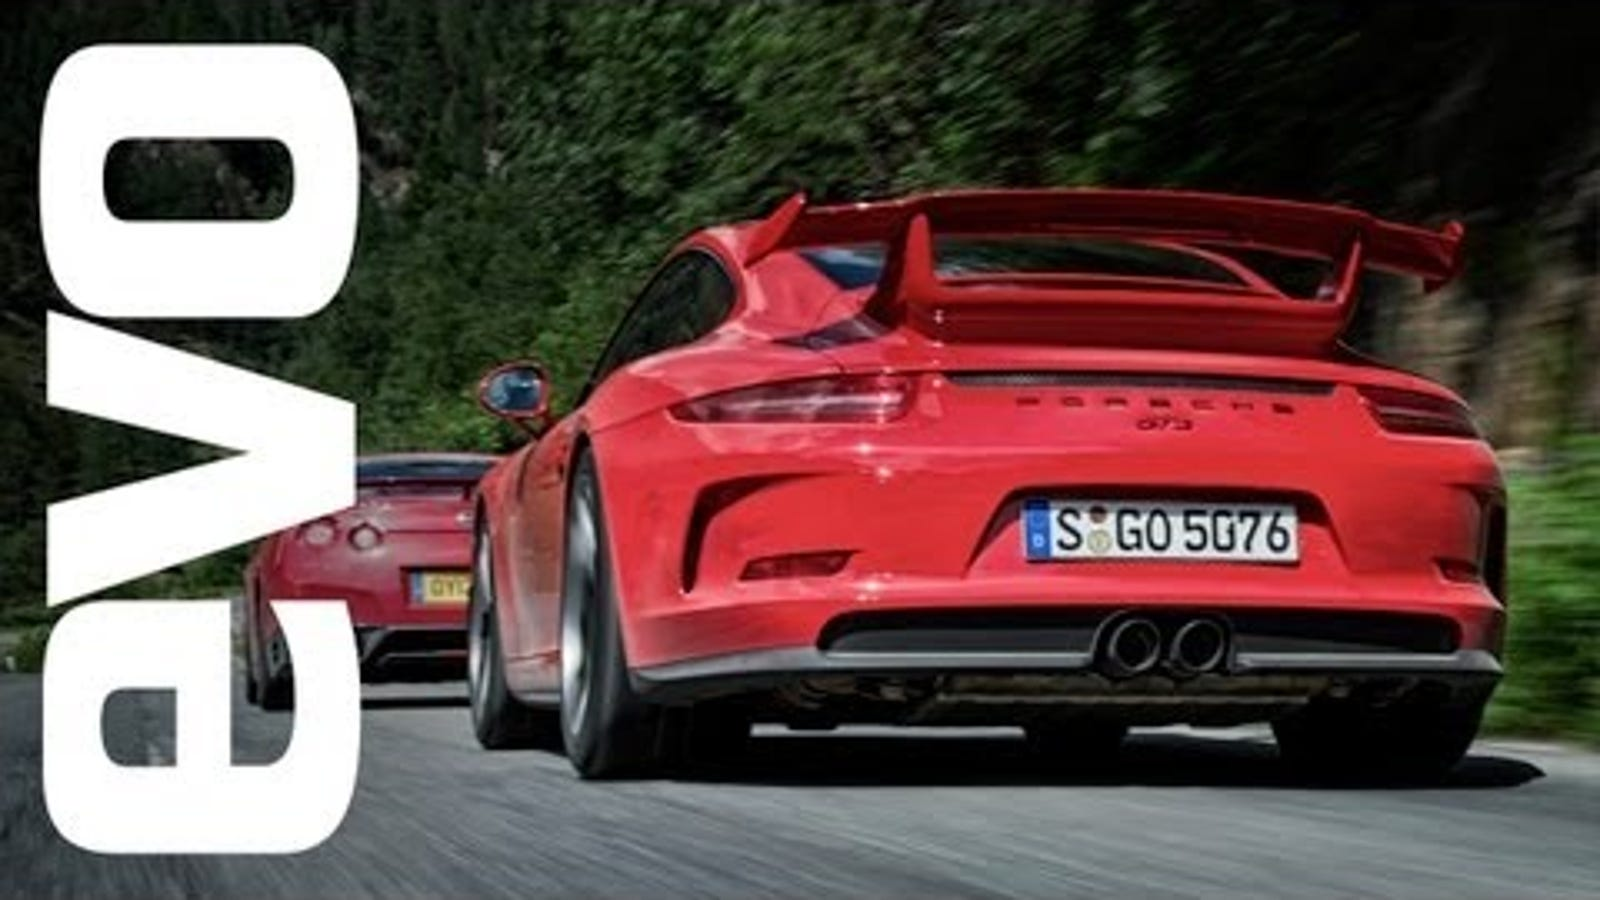 Watch The New Porsche 911 GT3 Take On Its Rivals In An Epic Battle